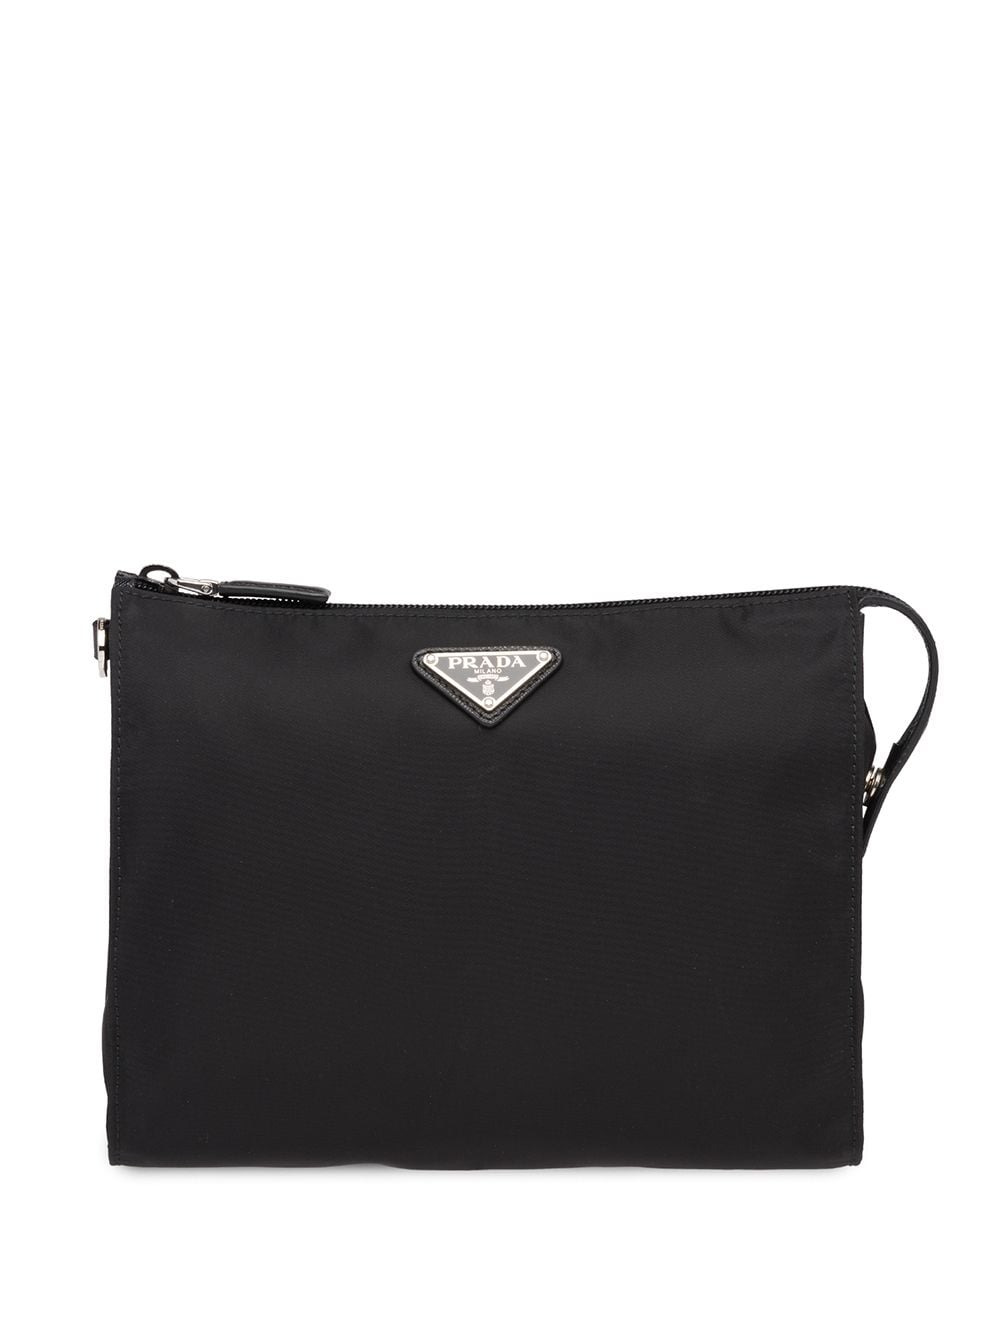 Prada Re-Nylon and Saffiano leather pouch - Black von Prada